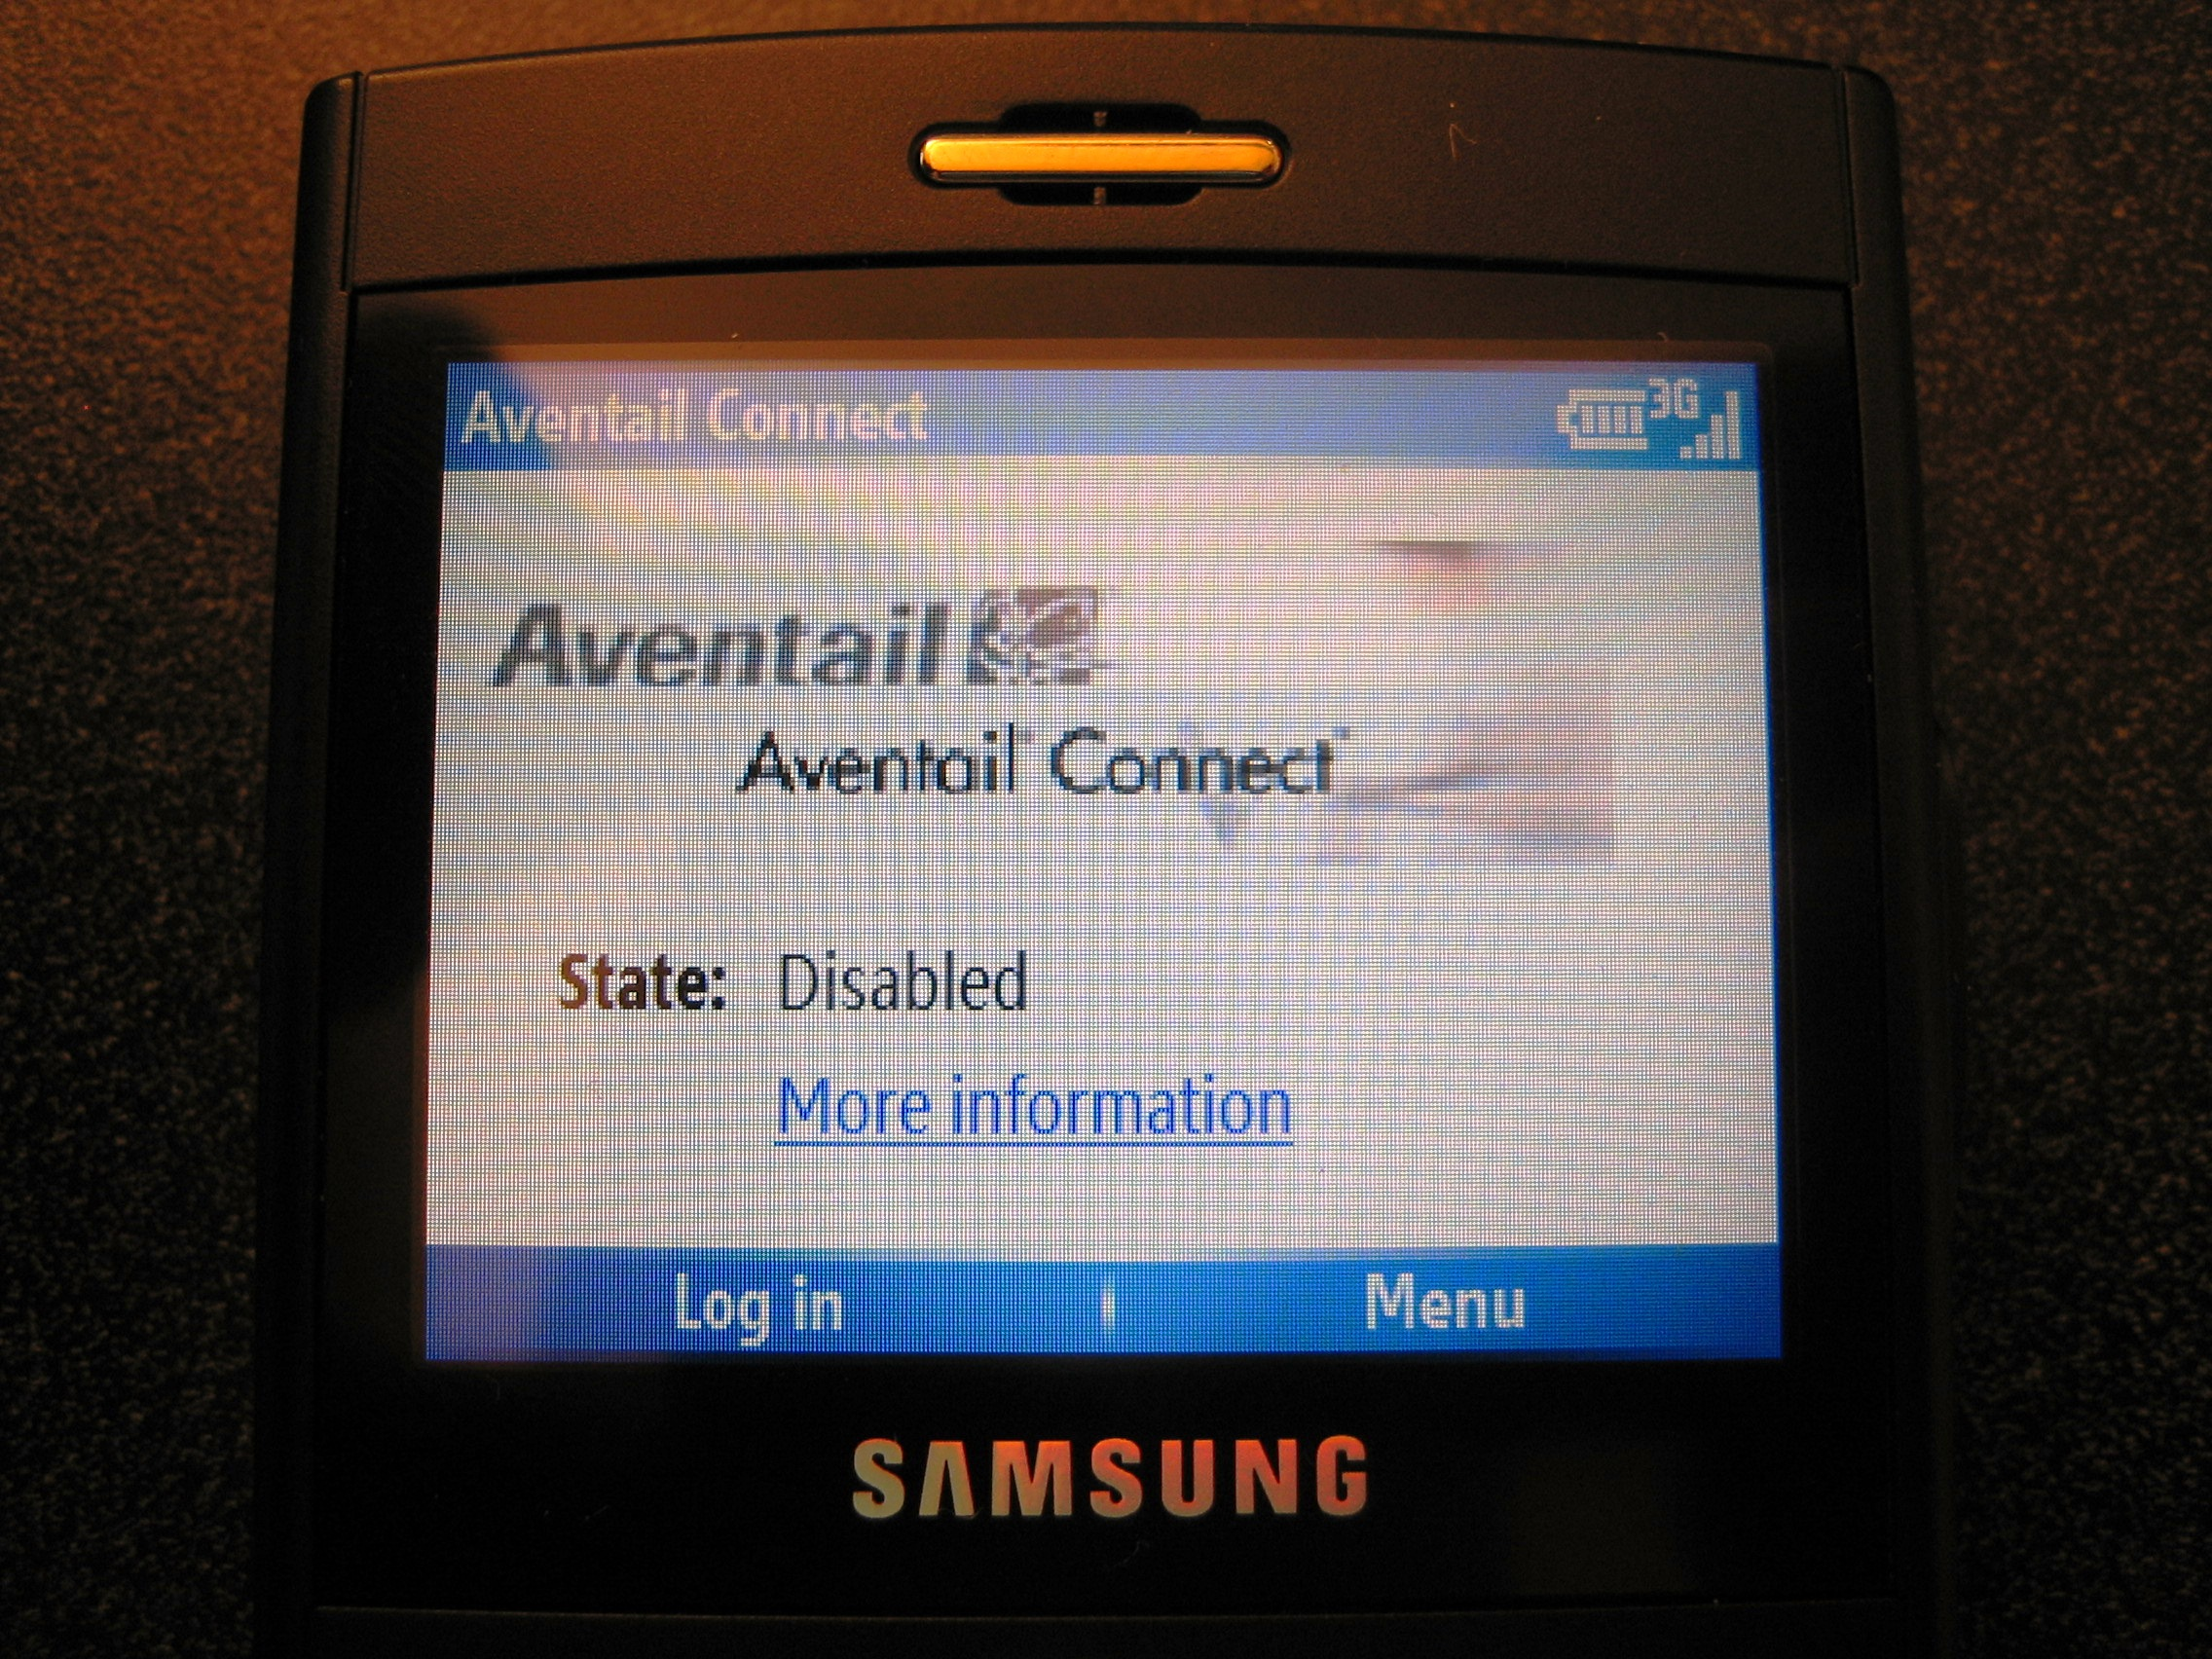 Aventail Connect Mobile (Smartphone) VPN client